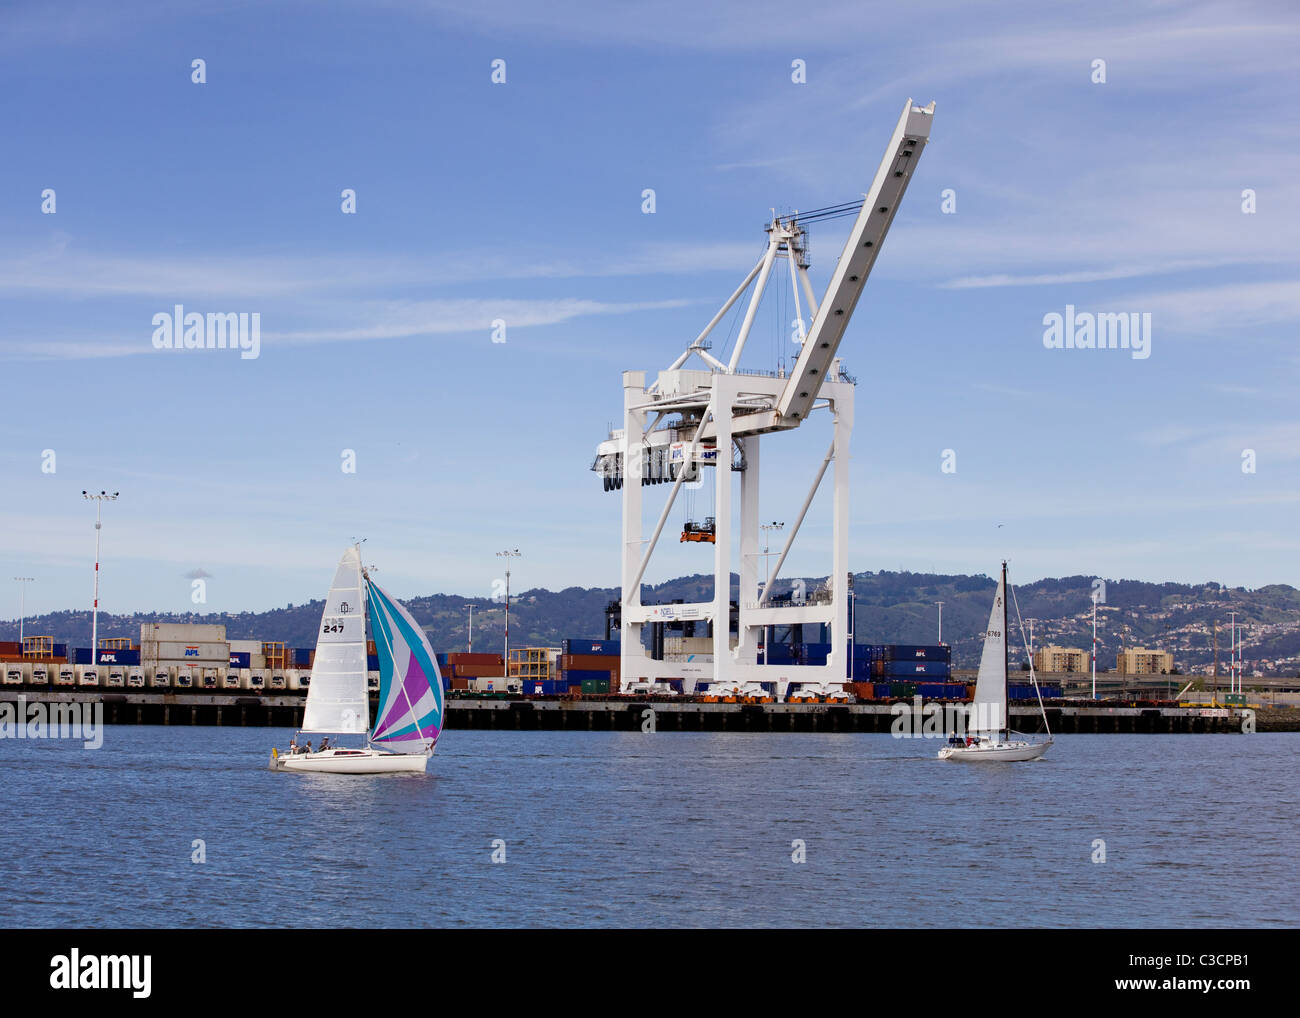 Sail boats and gantry cranes - Port of Oakland, California USA - Stock Image